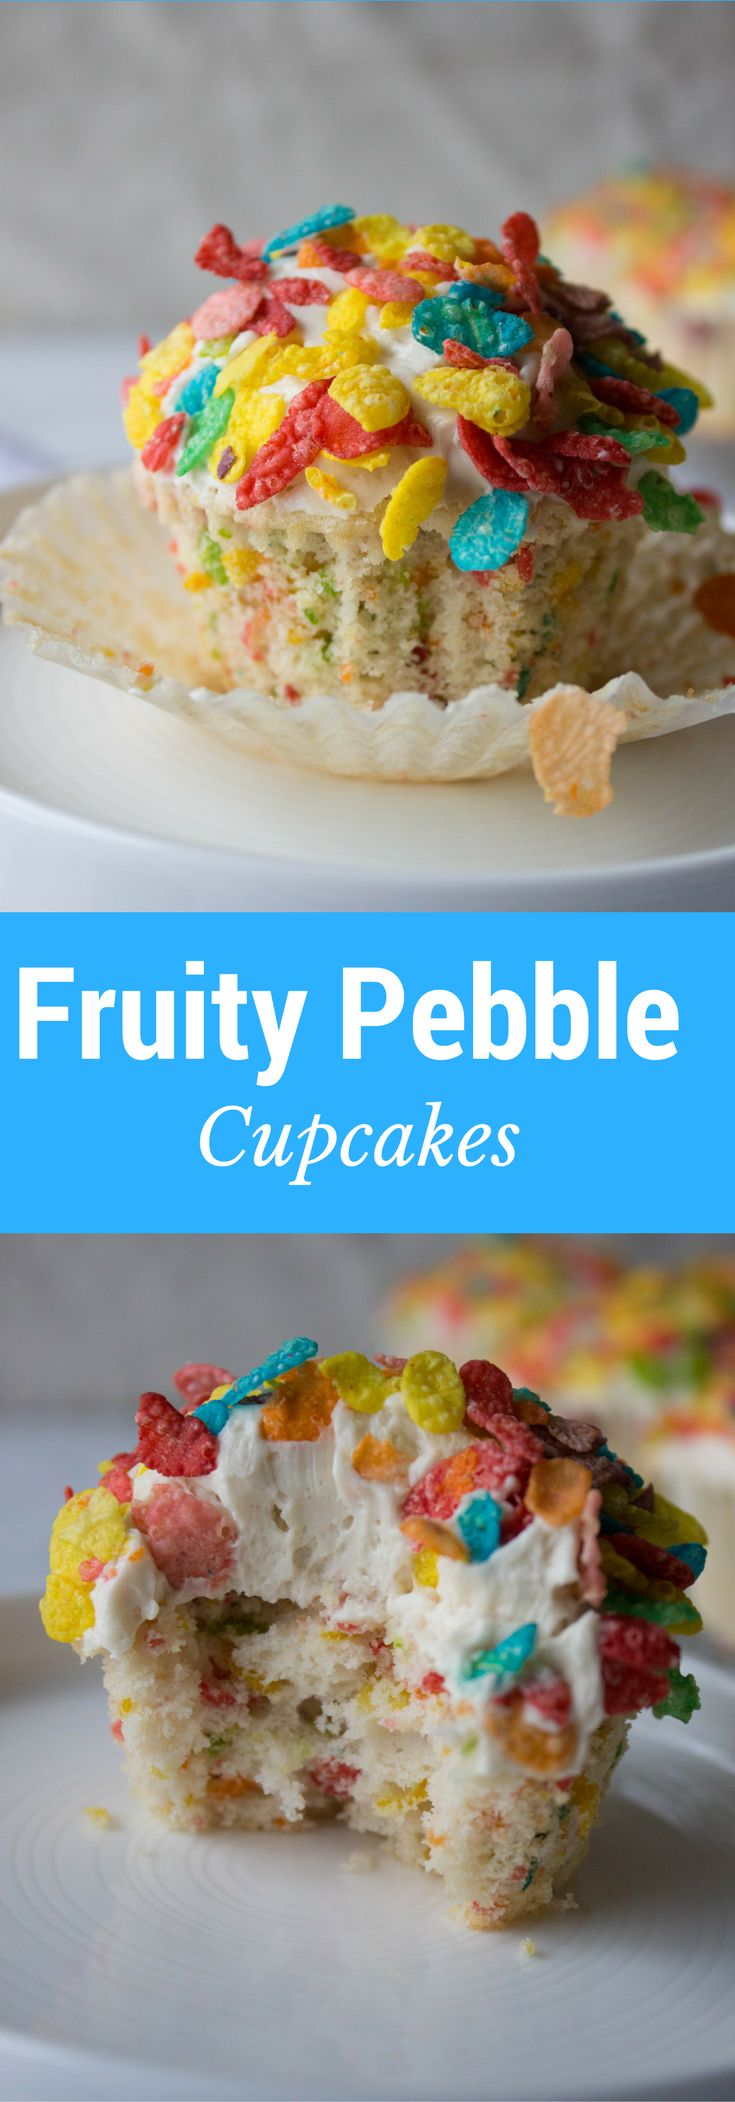 Fruity Pebble Cupcakes with a silky smooth buttercream frosting and even more fruity pebbles on top! They are out of control!